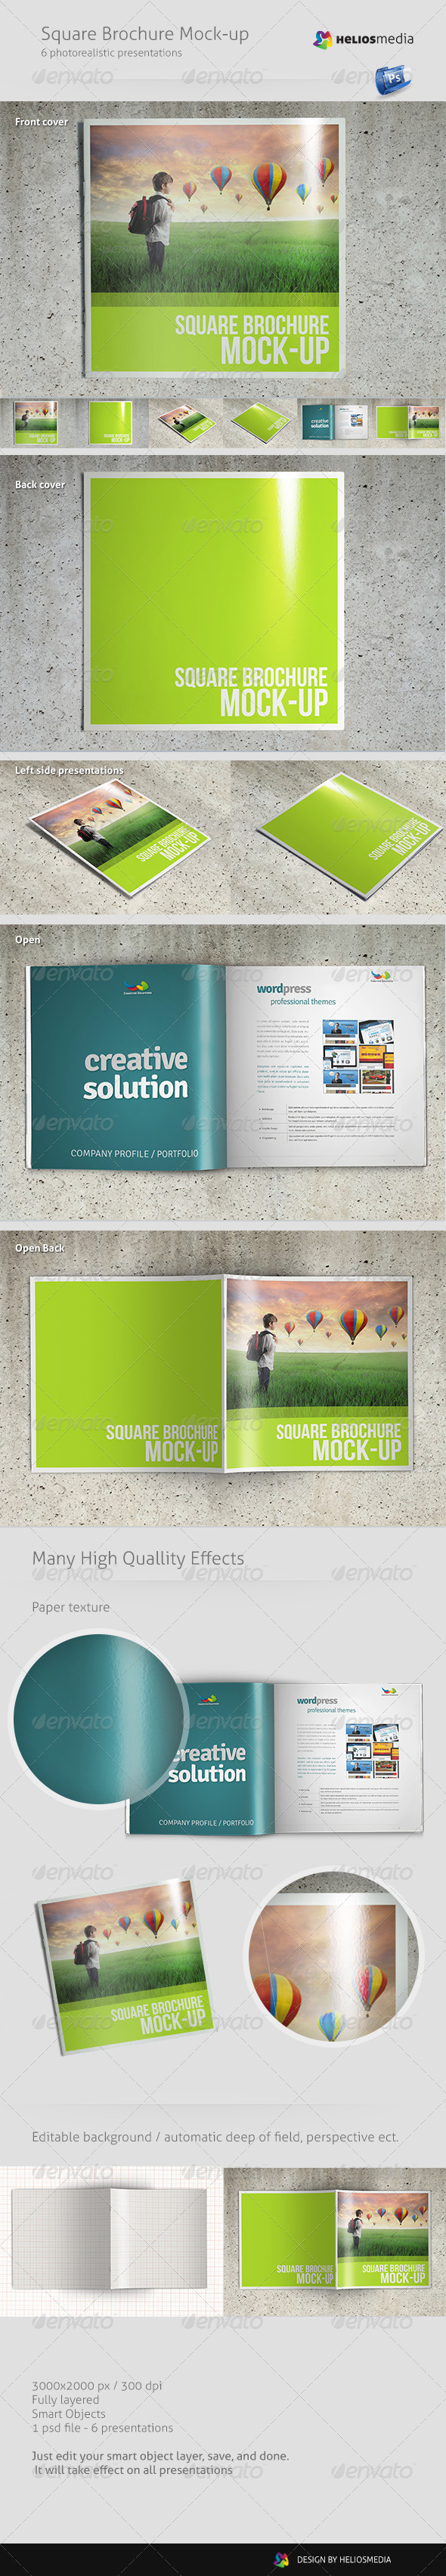 GraphicRiver Square Brochure Mock-up 4801891